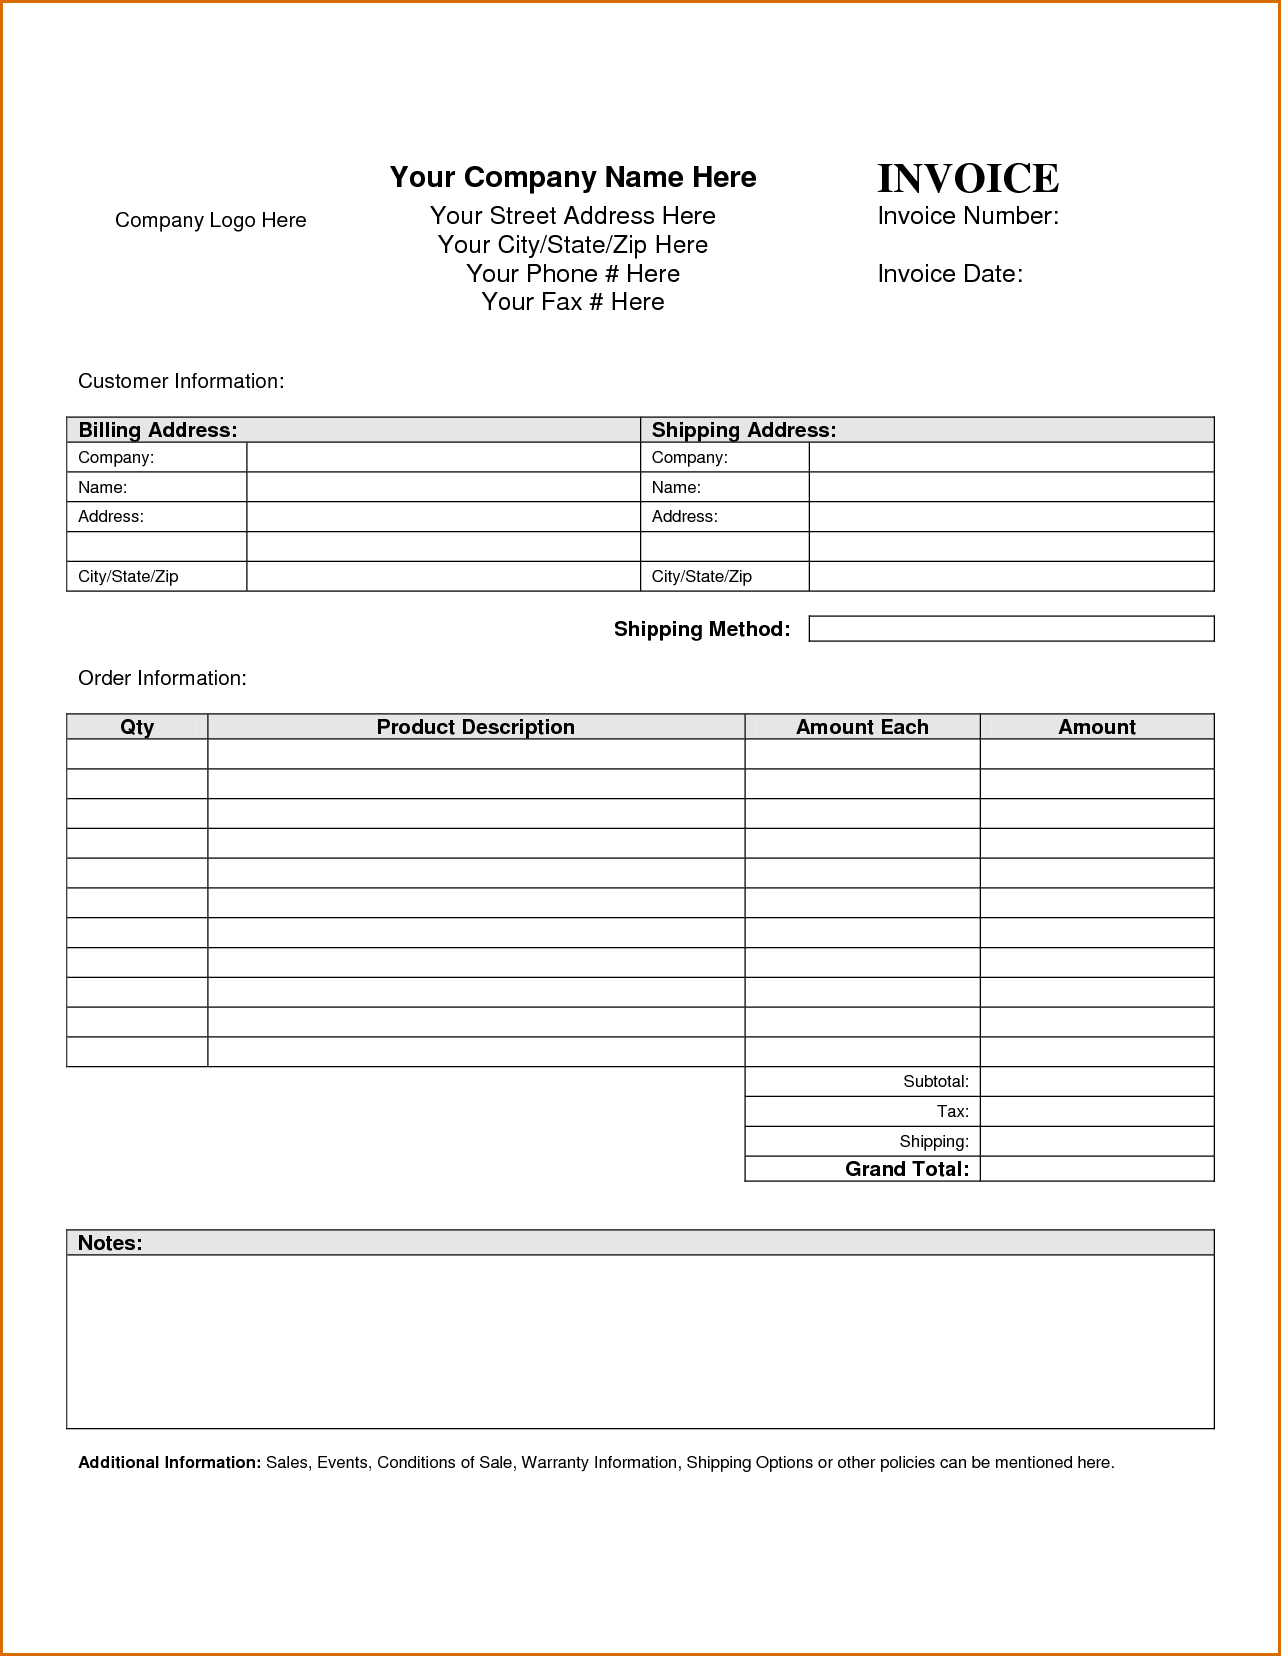 Construction Invoice Template Pdf and Parts Labor Invoice Template Free Rabitah